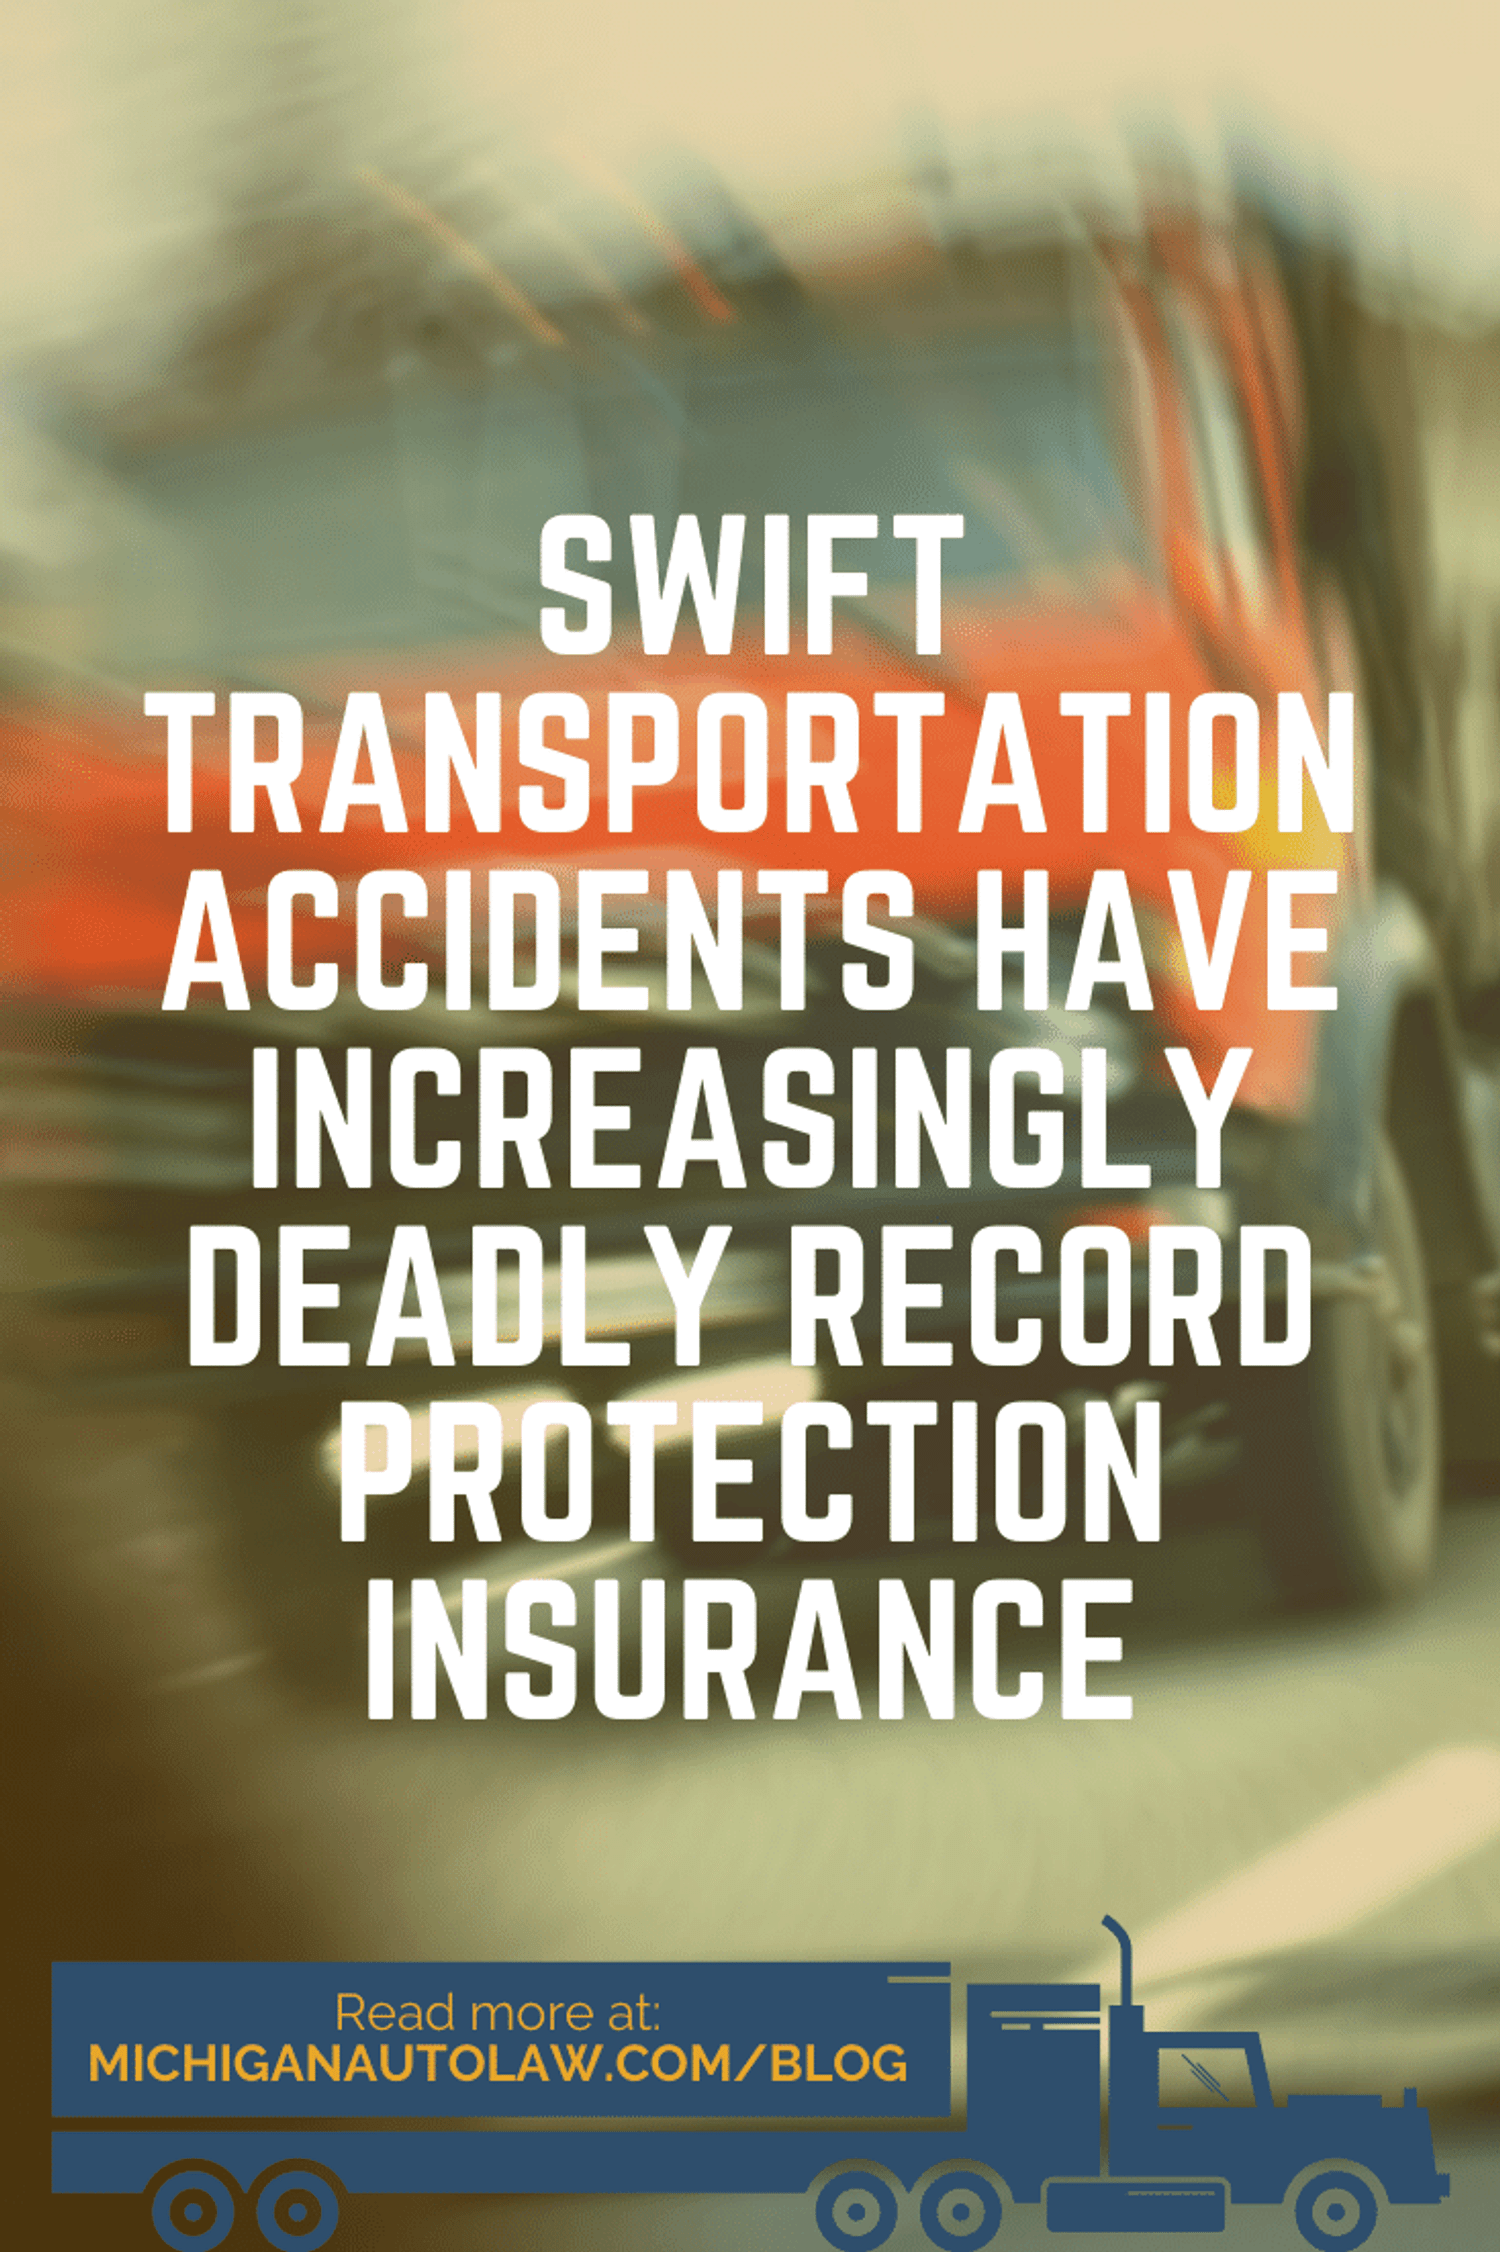 Swift Transportation Accidents Have Increasingly Deadly Record